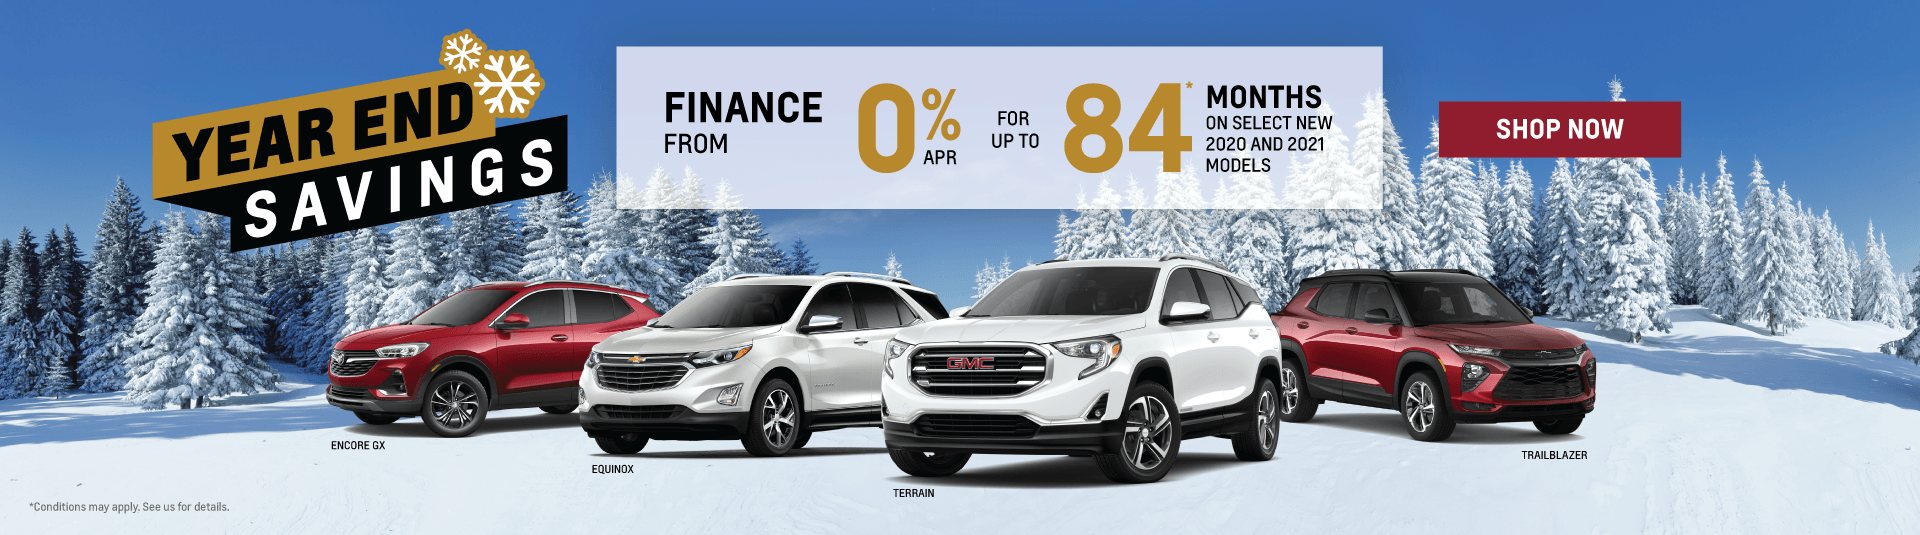 Chevrolet, Buick and GMC SUV Offers in Etobicoke